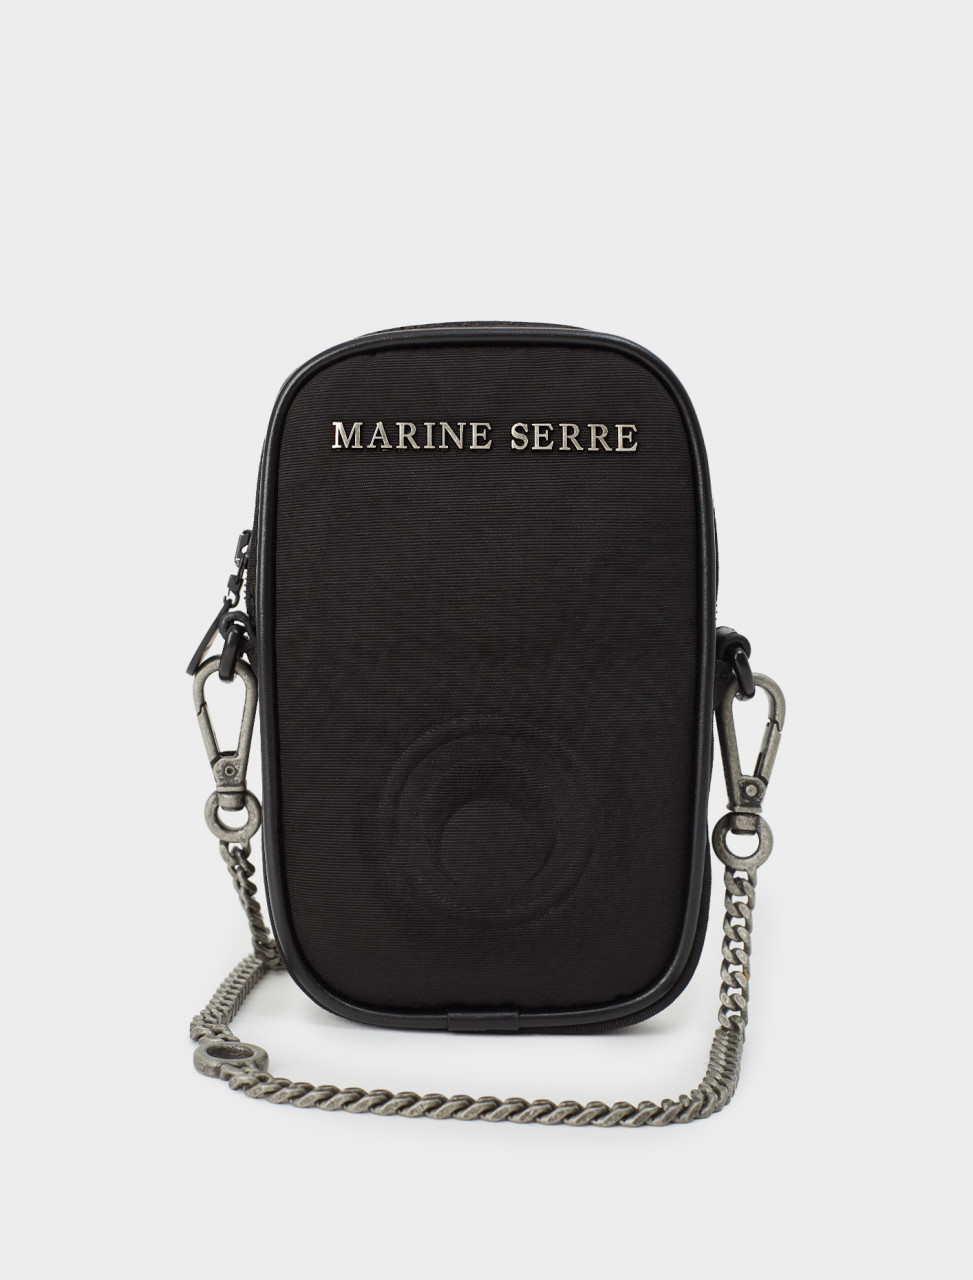 277-B009FW20W-VI0001 MARINE SERRE ONE POCKET PHONE CASE BAG BLACK